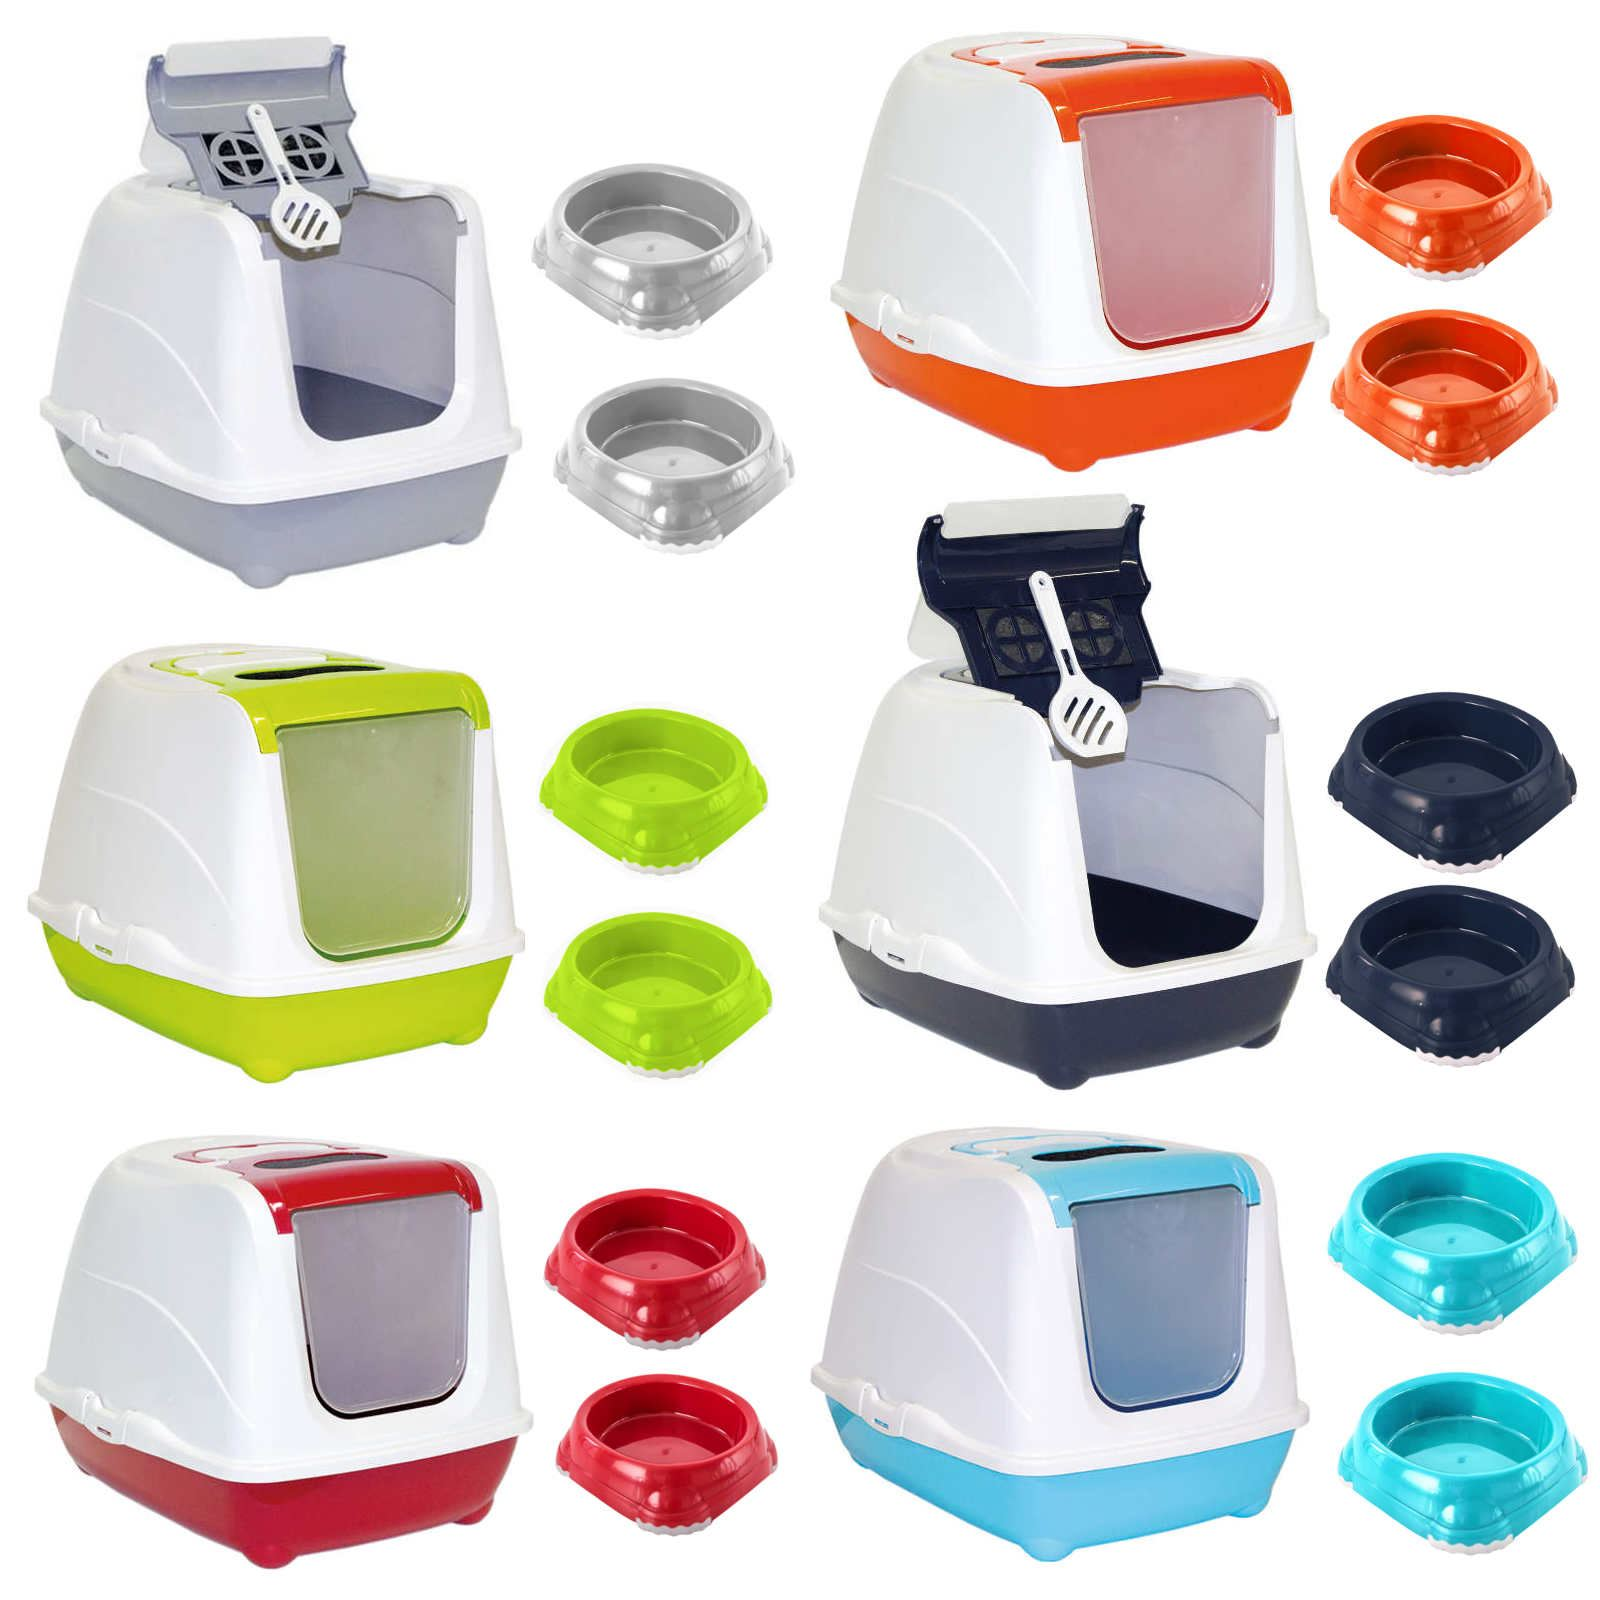 Cat Flip Litter Tray + 2 Bowls 0.2L or 0.3L + Scoop Hooded Toilet Filter Bowl 2